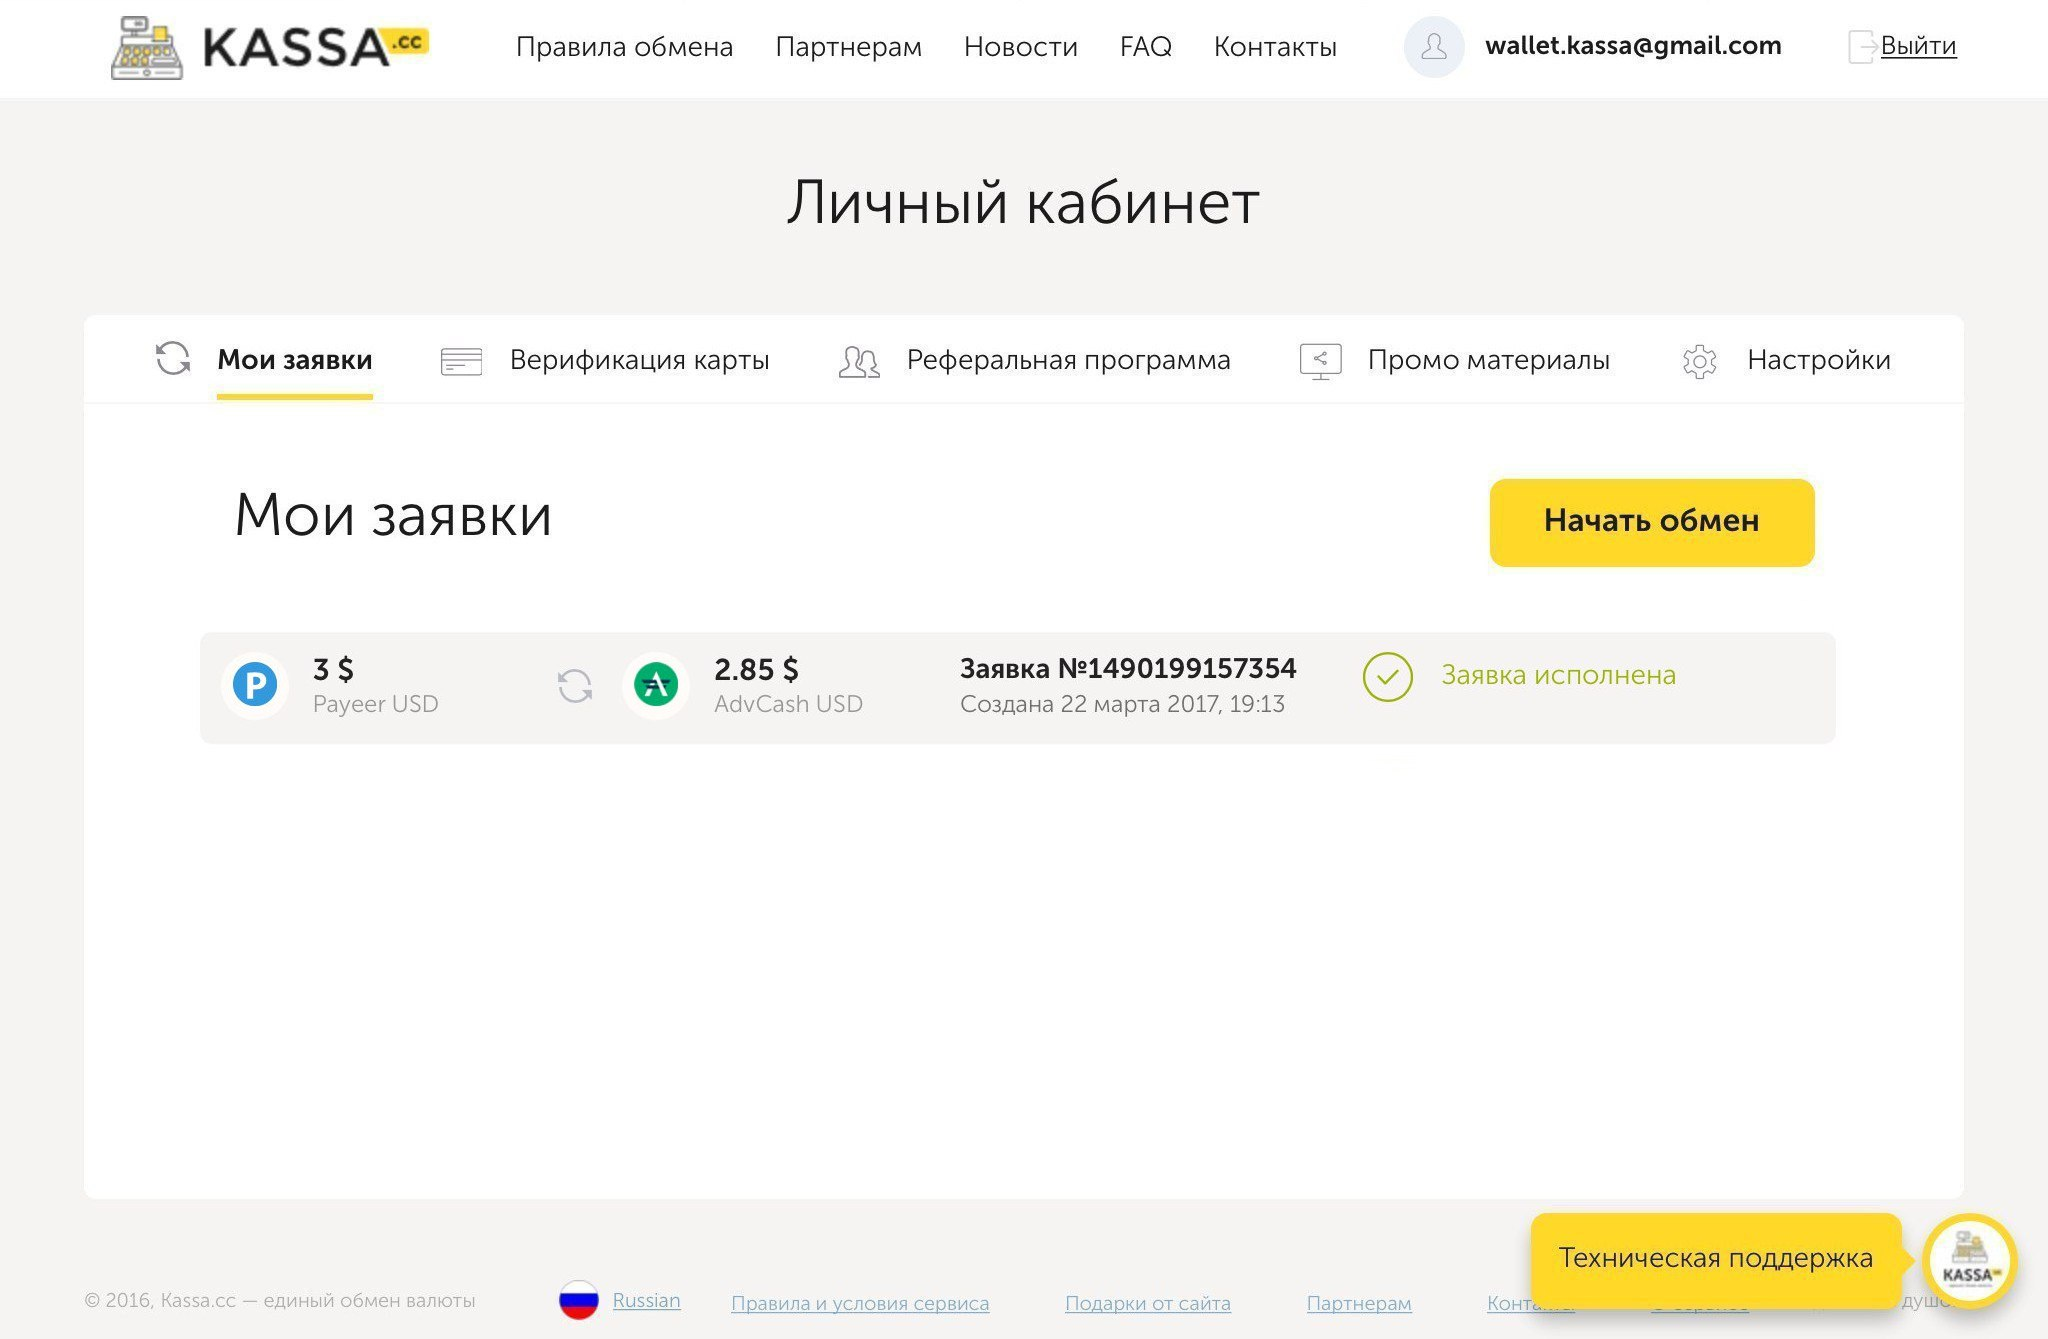 Kassa.cc is a single currency exchange. Exchange Payeer USD to AdvCash USD